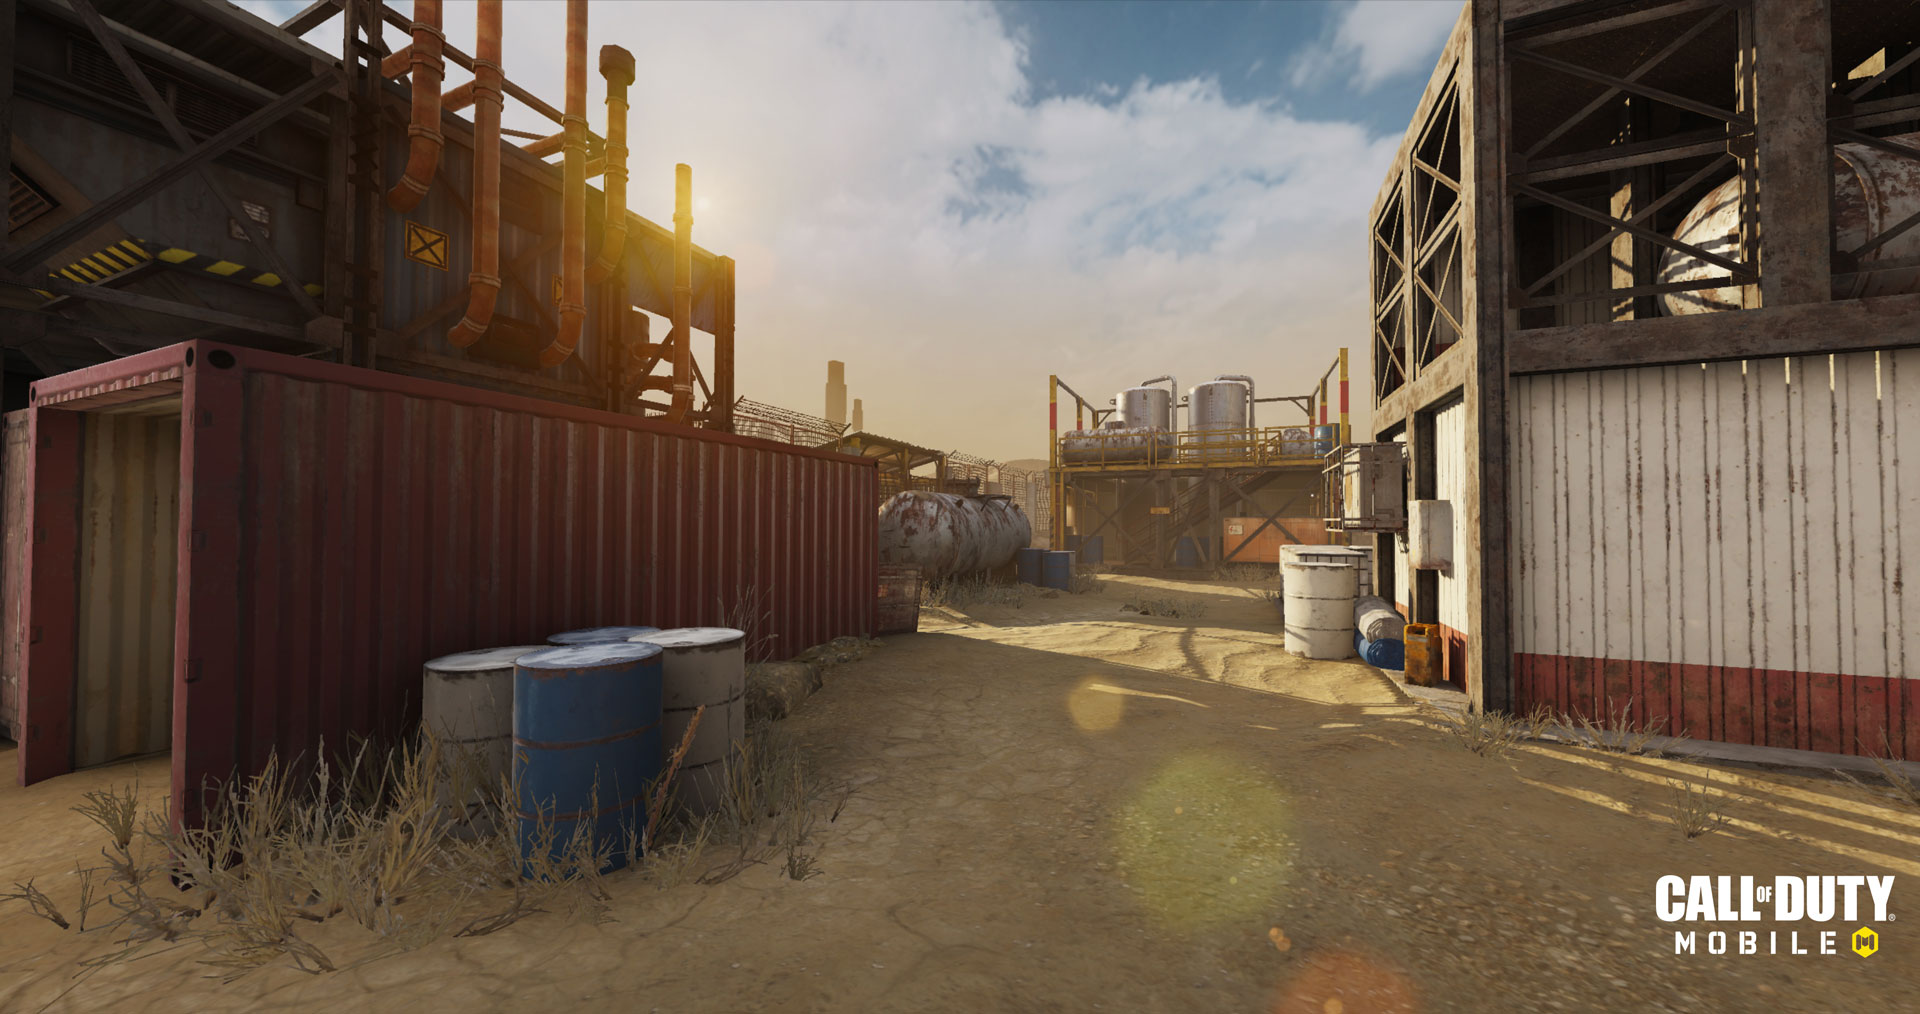 Call of Duty®: Mobile Map Snapshot: Rust - Image 2